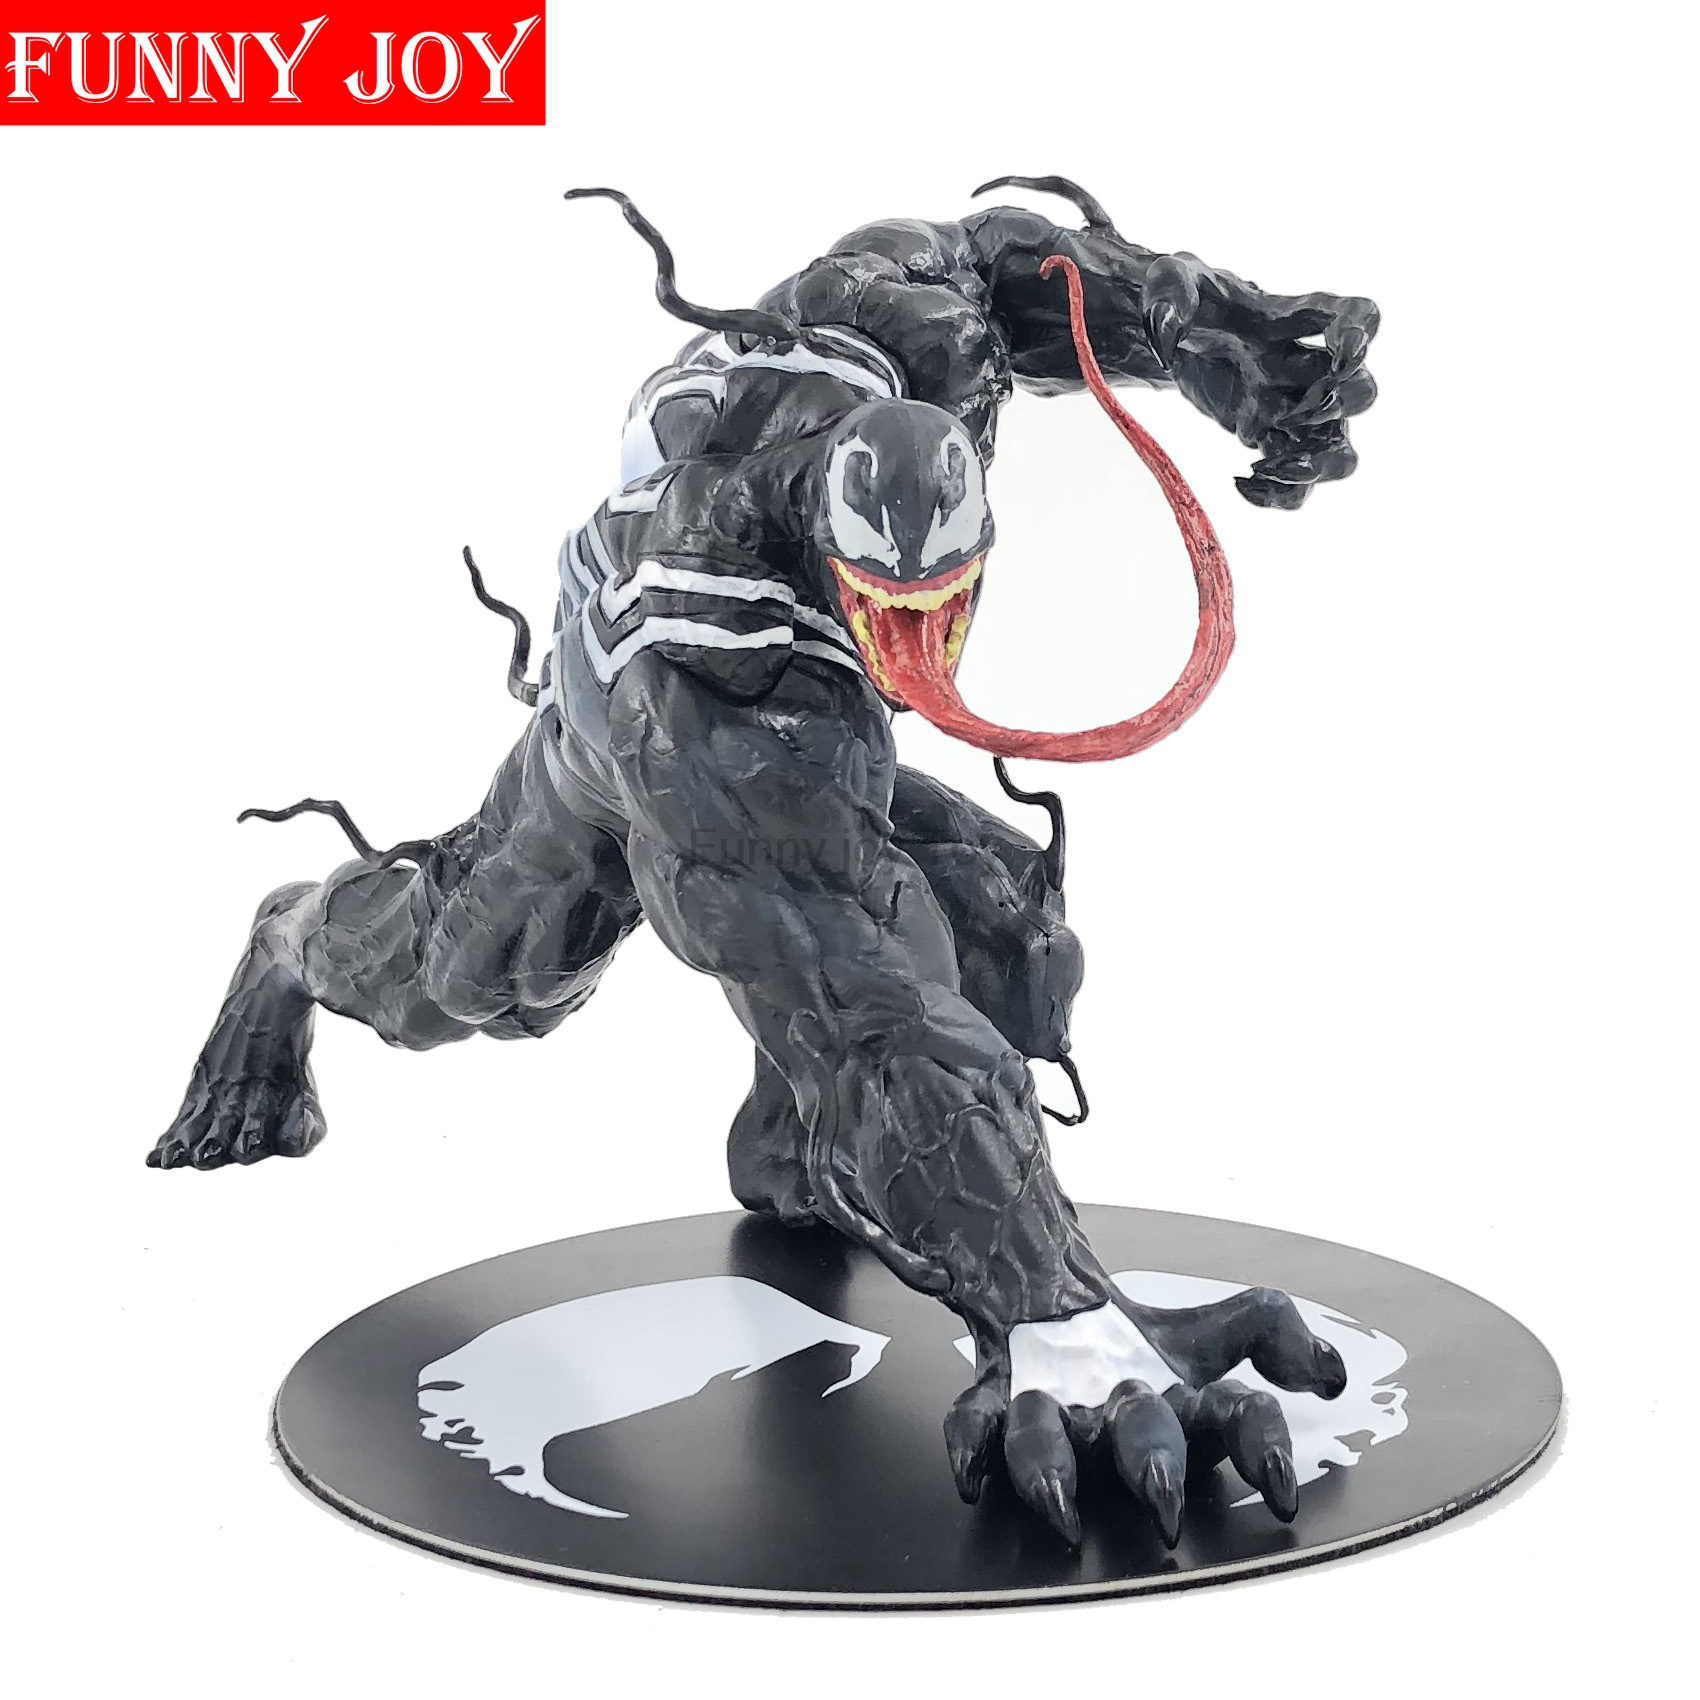 Spider Man Venom Figure ARTFX+ X MEN X-MEN Edward Brock Iron Man Wolverine PVC Action Figure Model Collection Toy Gift